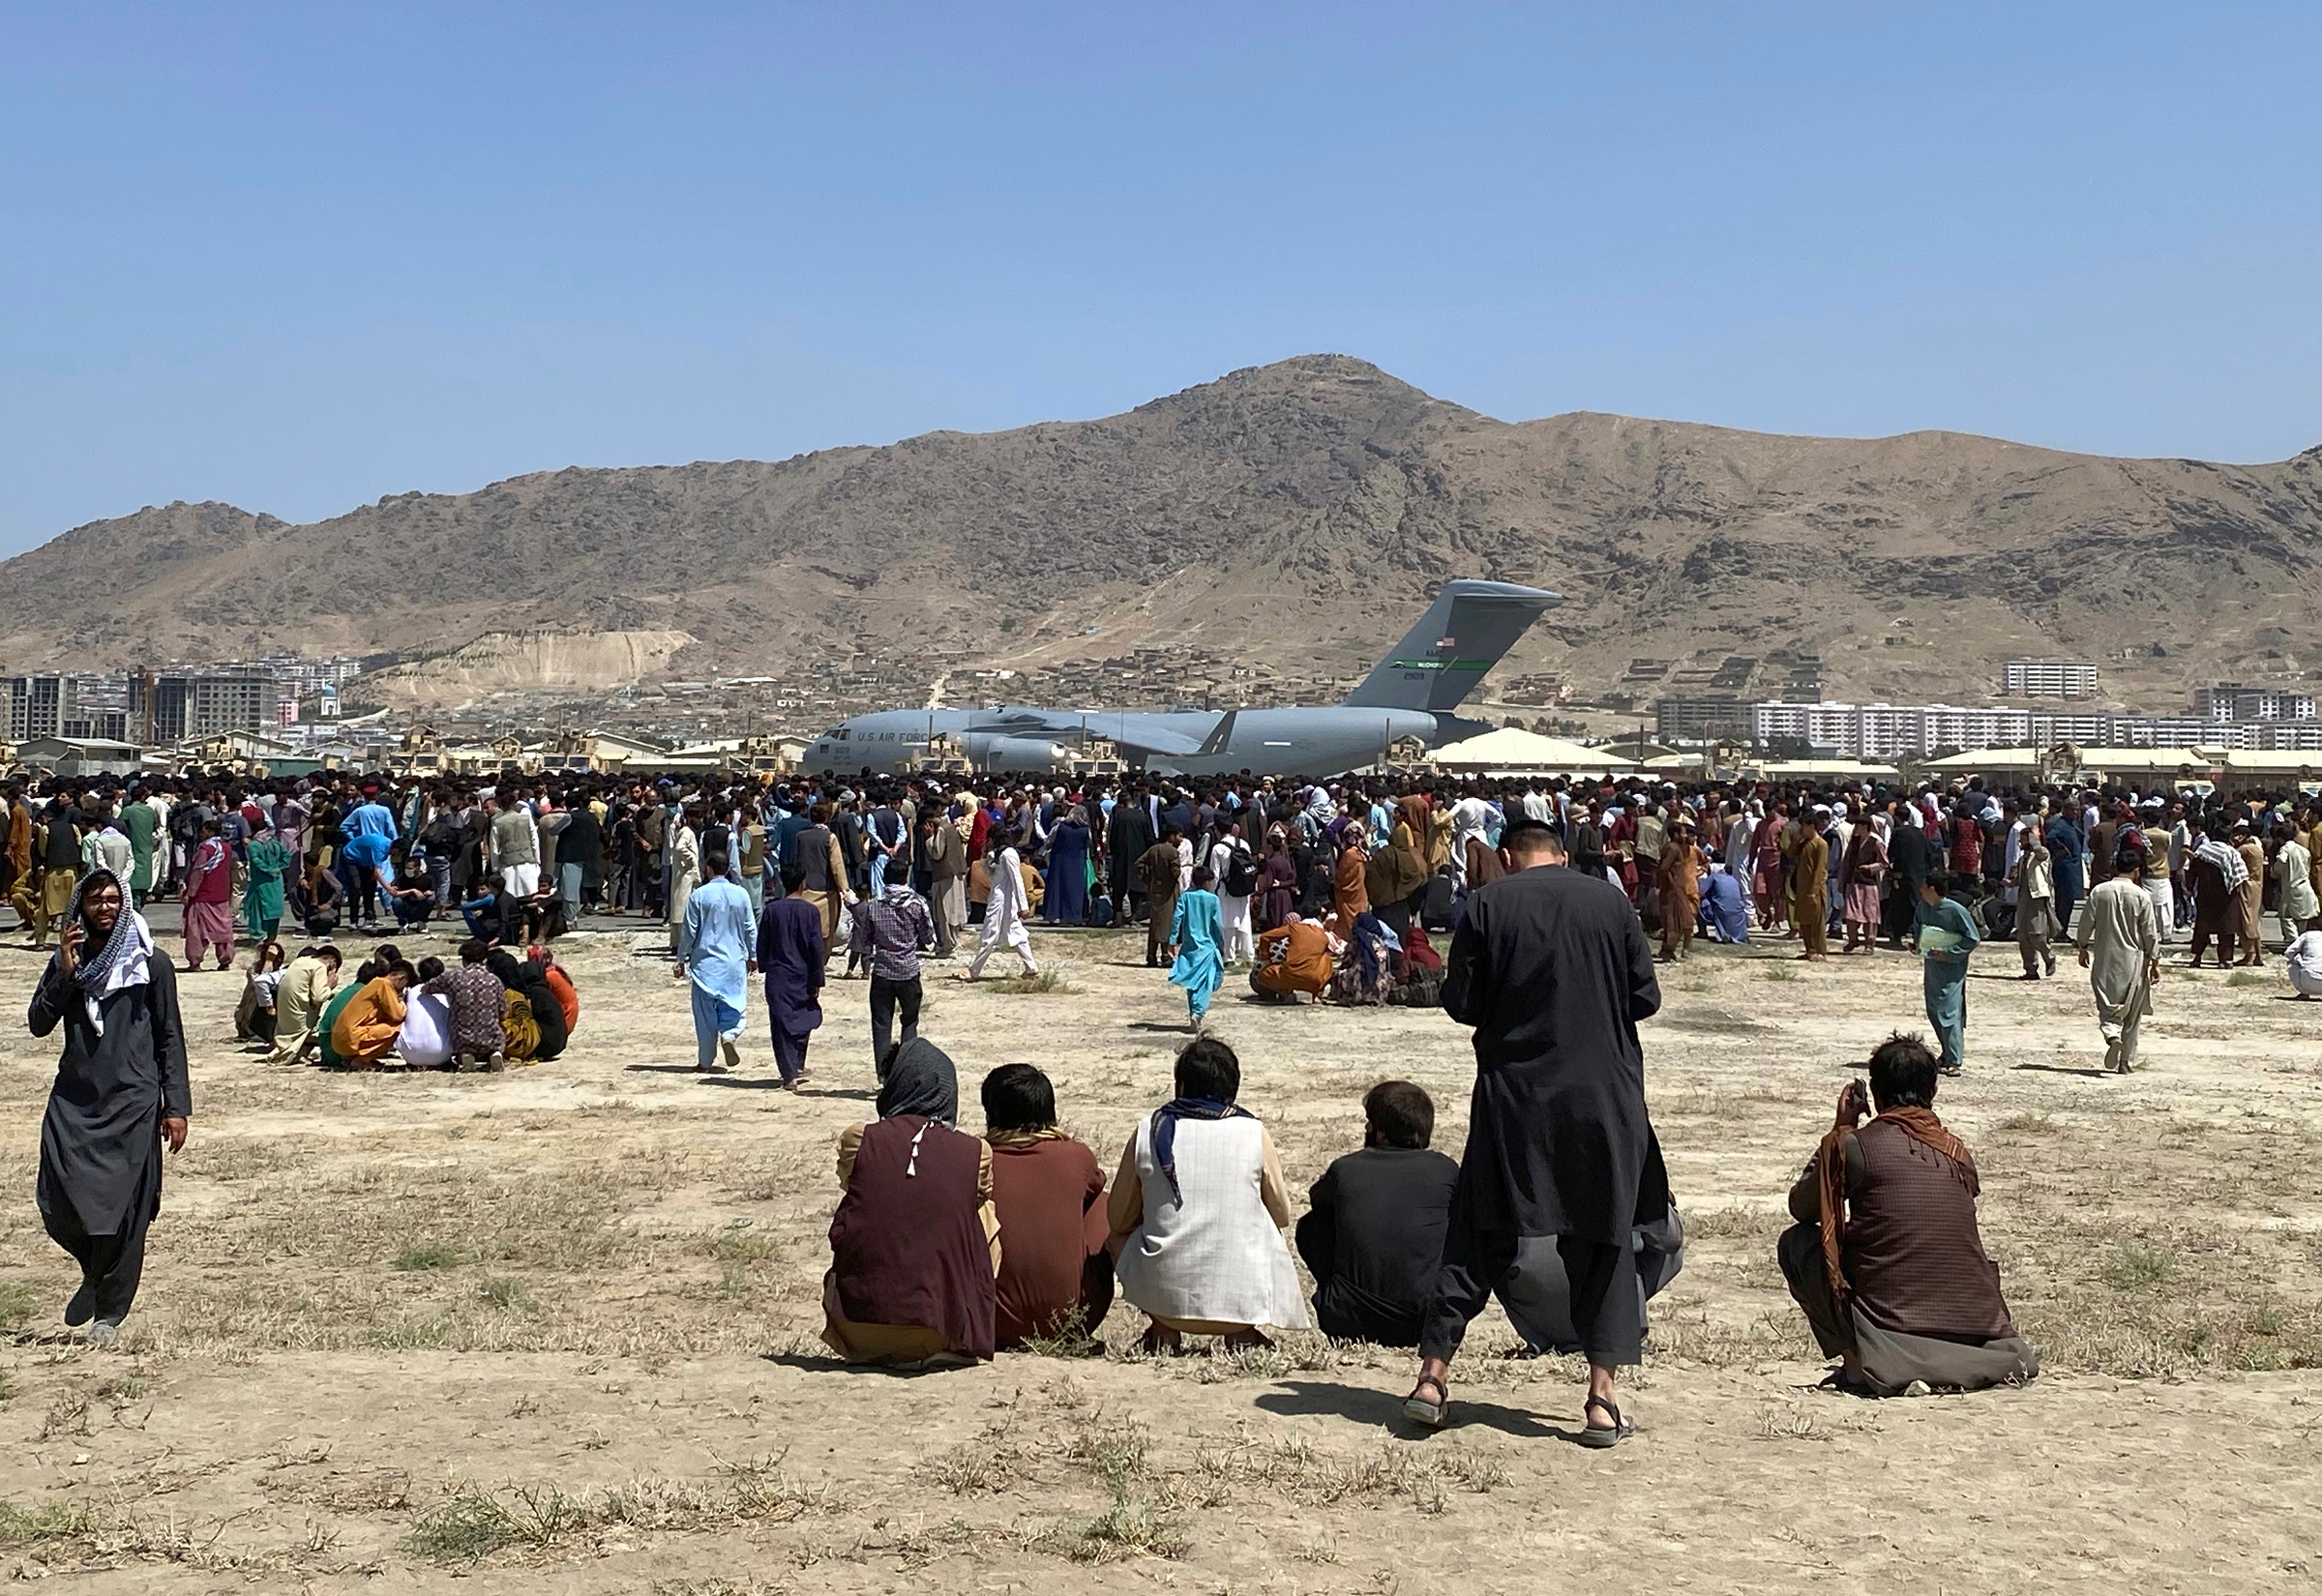 Hundreds of people gather near a U.S. Air Force C-17 transport plane at a perimeter at the international airport in Kabul on Monday, Aug. 16.